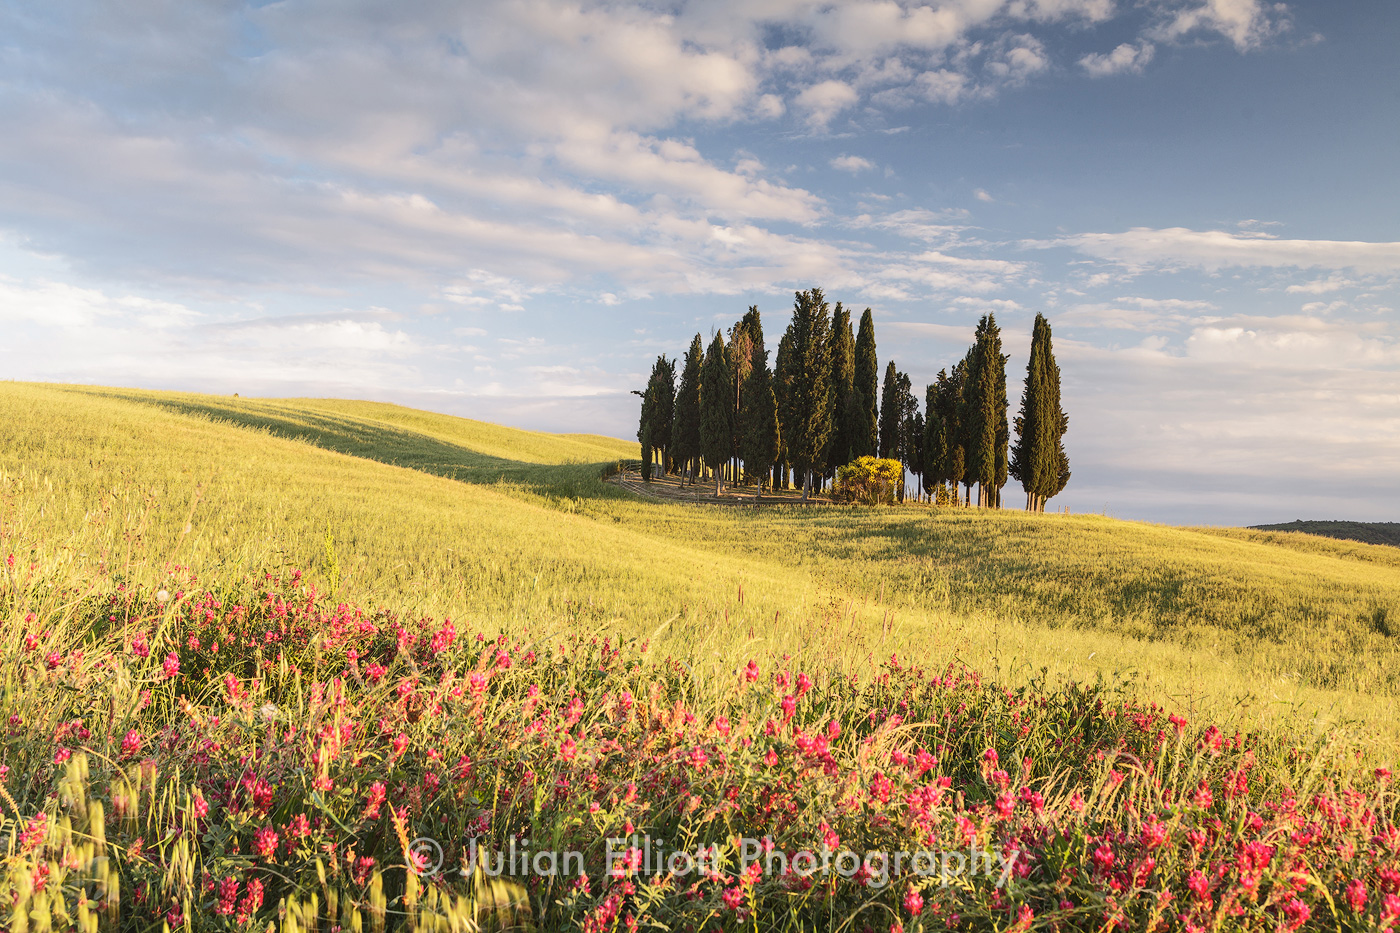 A clump of cypress trees in the Val d'Orcia.